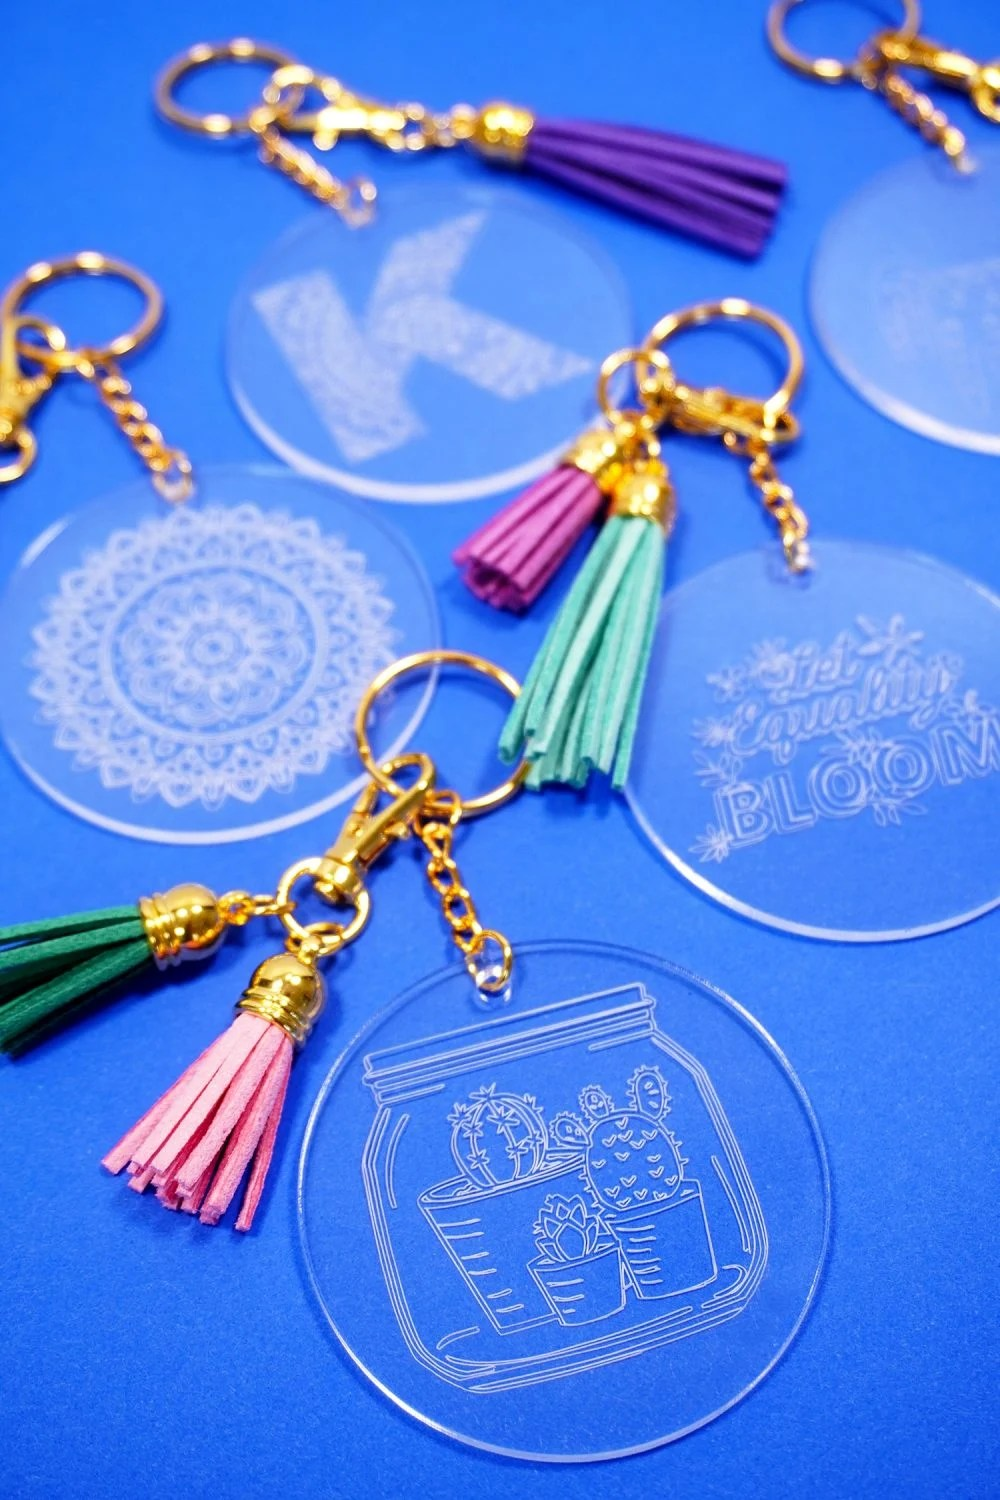 keychains with Cricut engraving tool